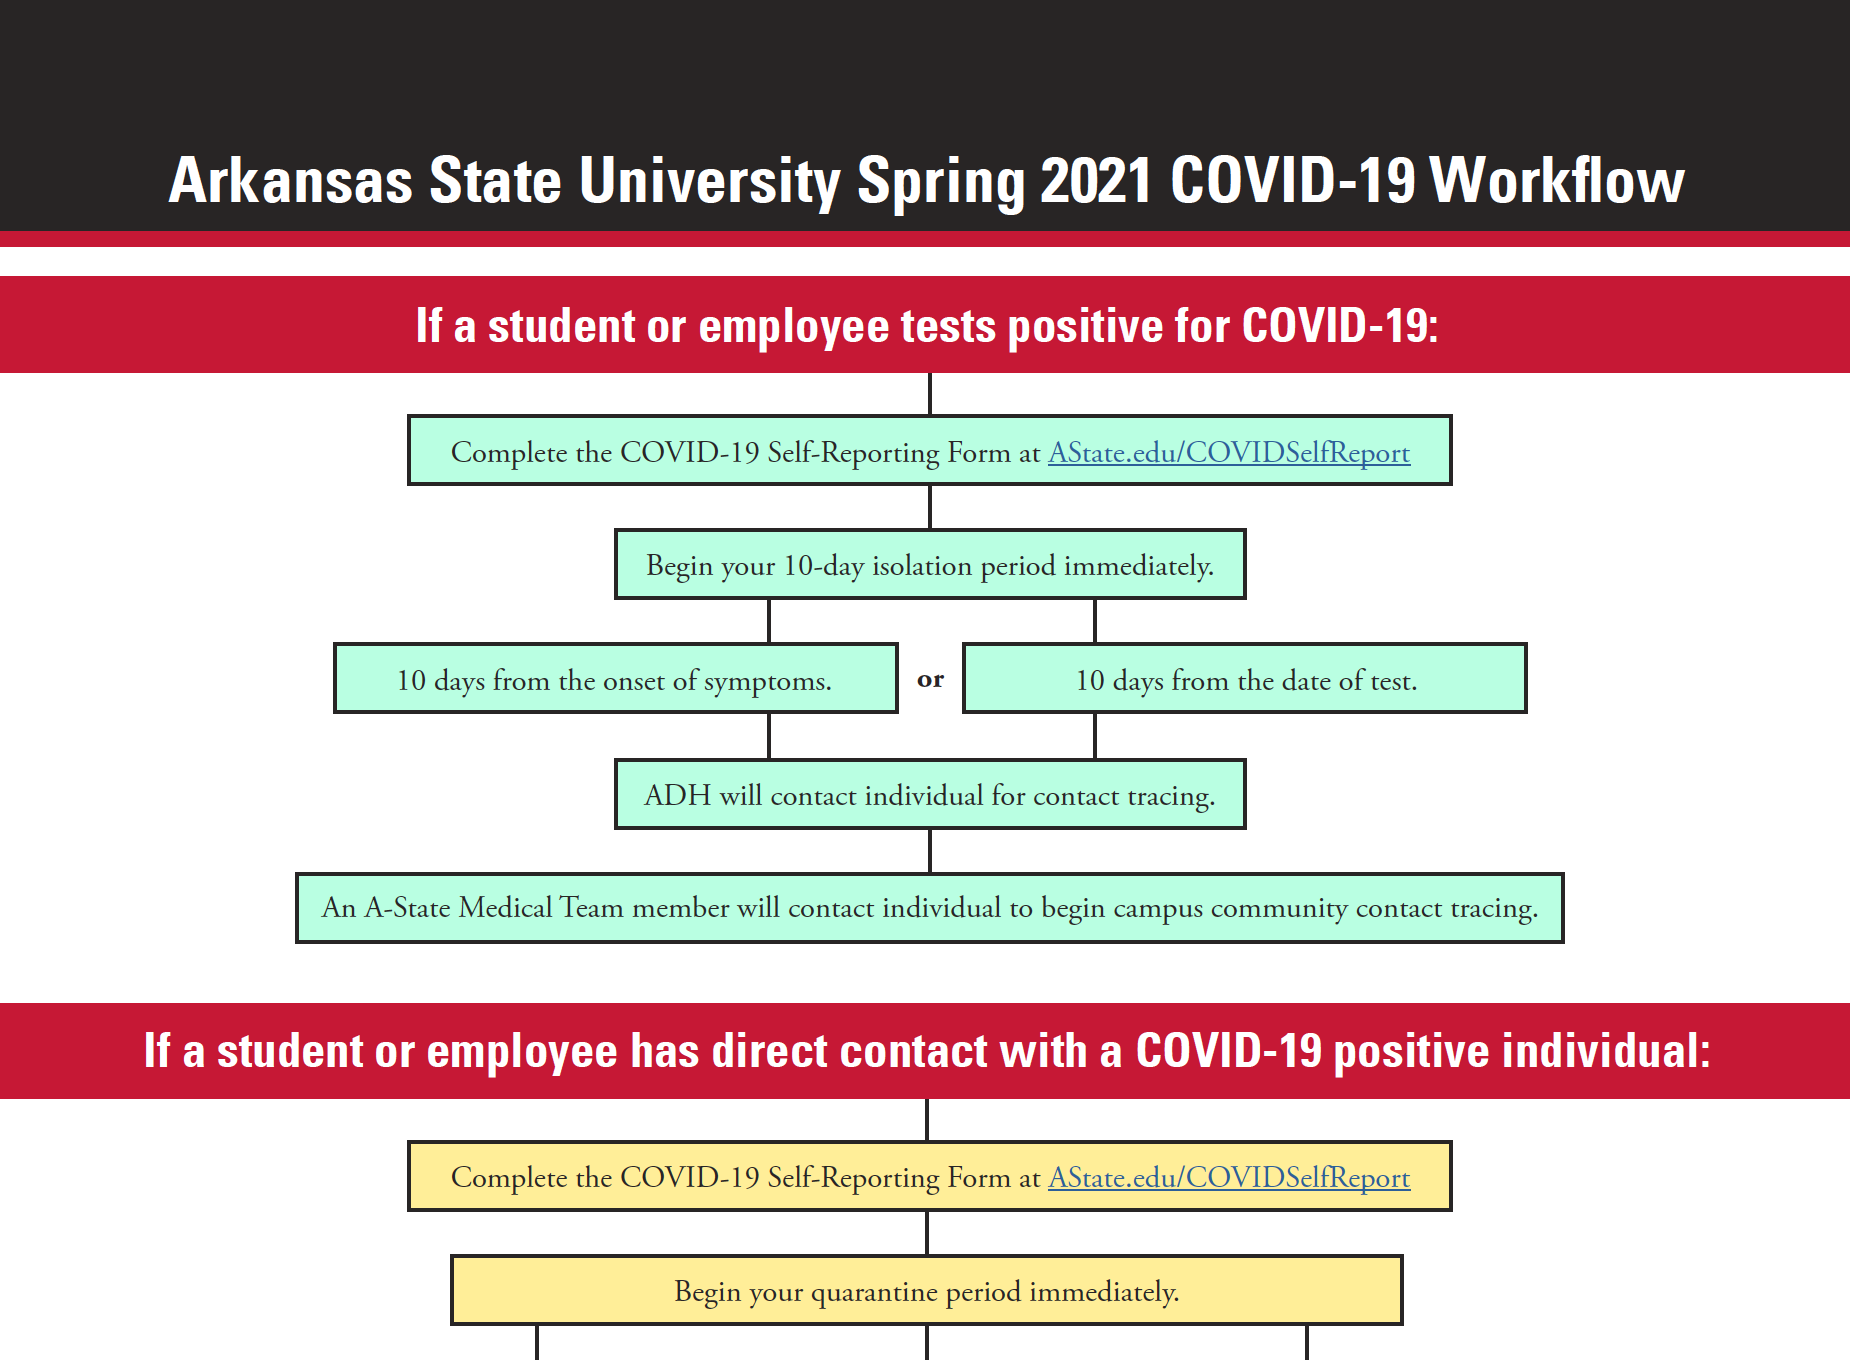 workflow chart that shows the decision options should one experience COVID-19 symptoms, get tested for COVID-19, or have direct contact with someone who is a COVID-19 postive, or suspected positive.